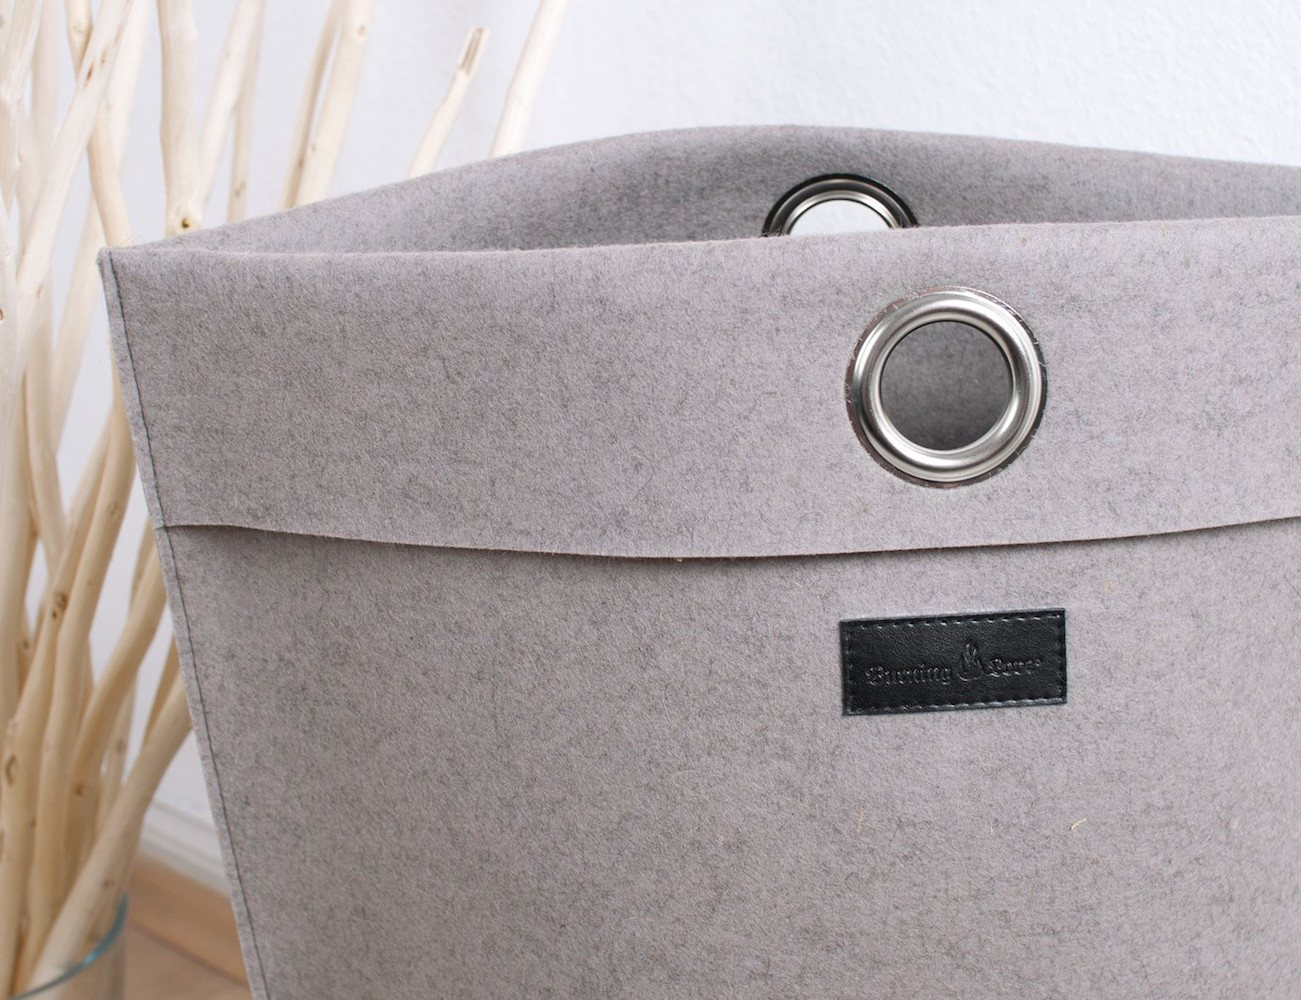 Where Can I Buy Laundry Bags Laundry Bag By Burning Love Gadget Flow